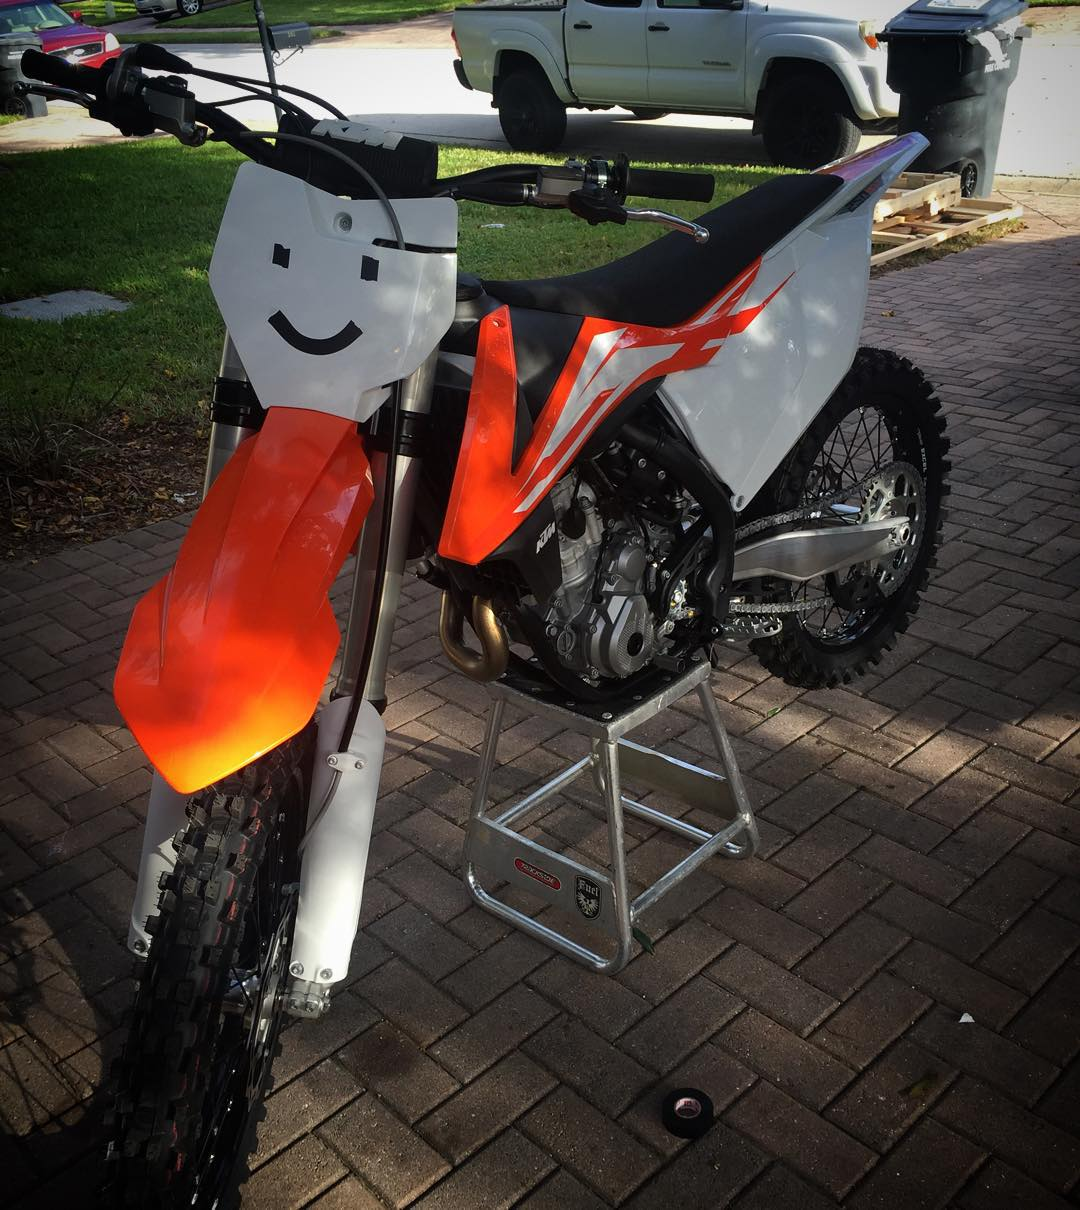 ☺️ My mood right now about riding ww tomorrow! #motocross #Moto #orange #timetoshred #smileyface #happy